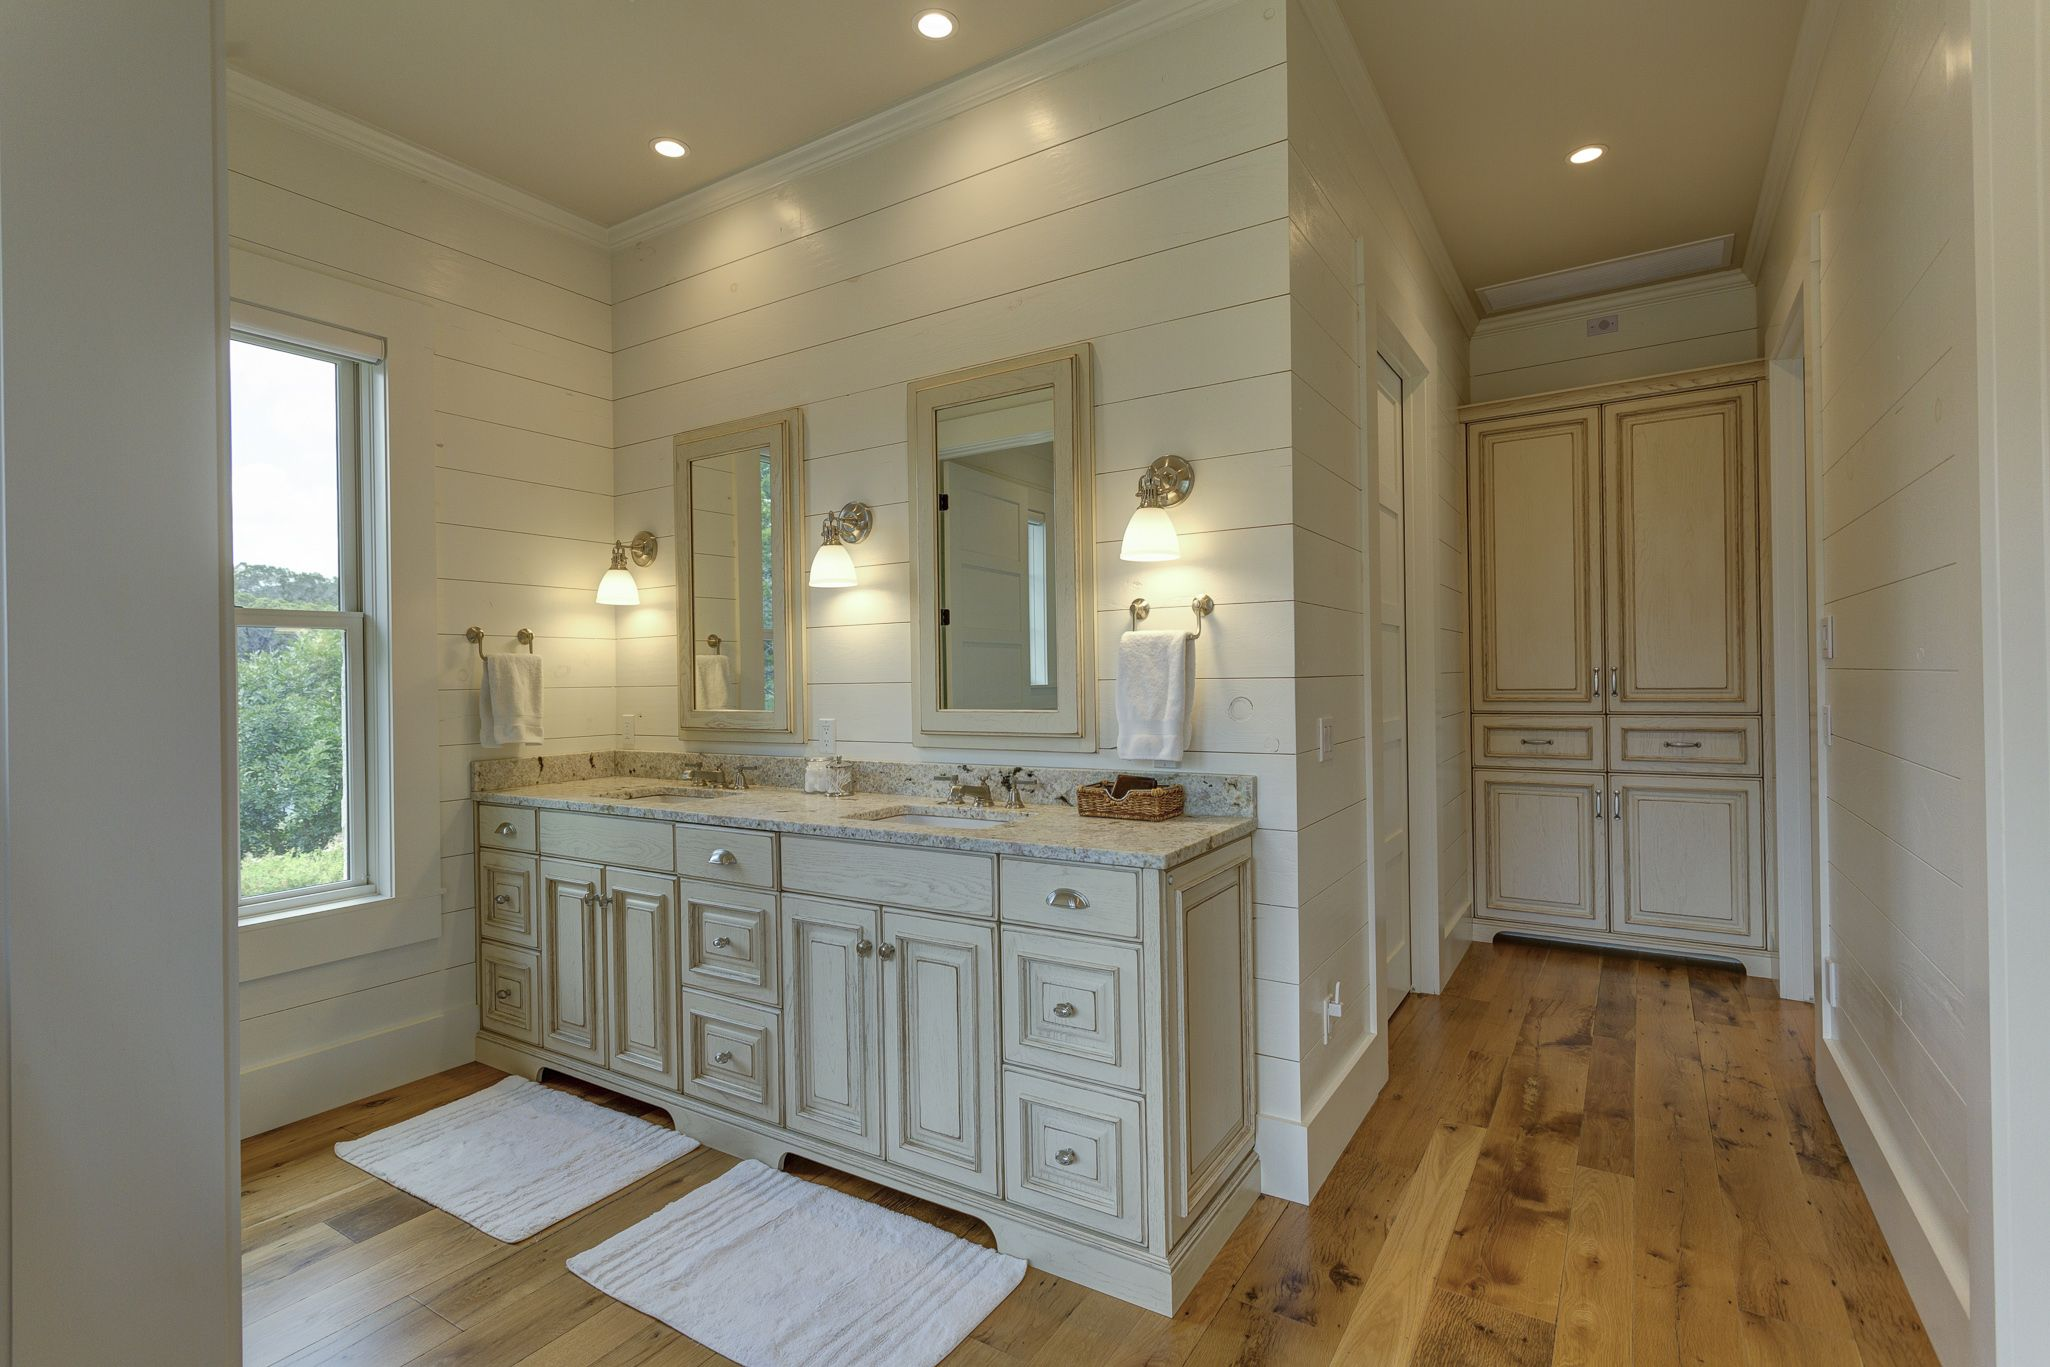 As Residential Architects Custom Home Designers Our Unique Craft Is Designing New Homes With The Soul Of An Old For Texas Hill Country